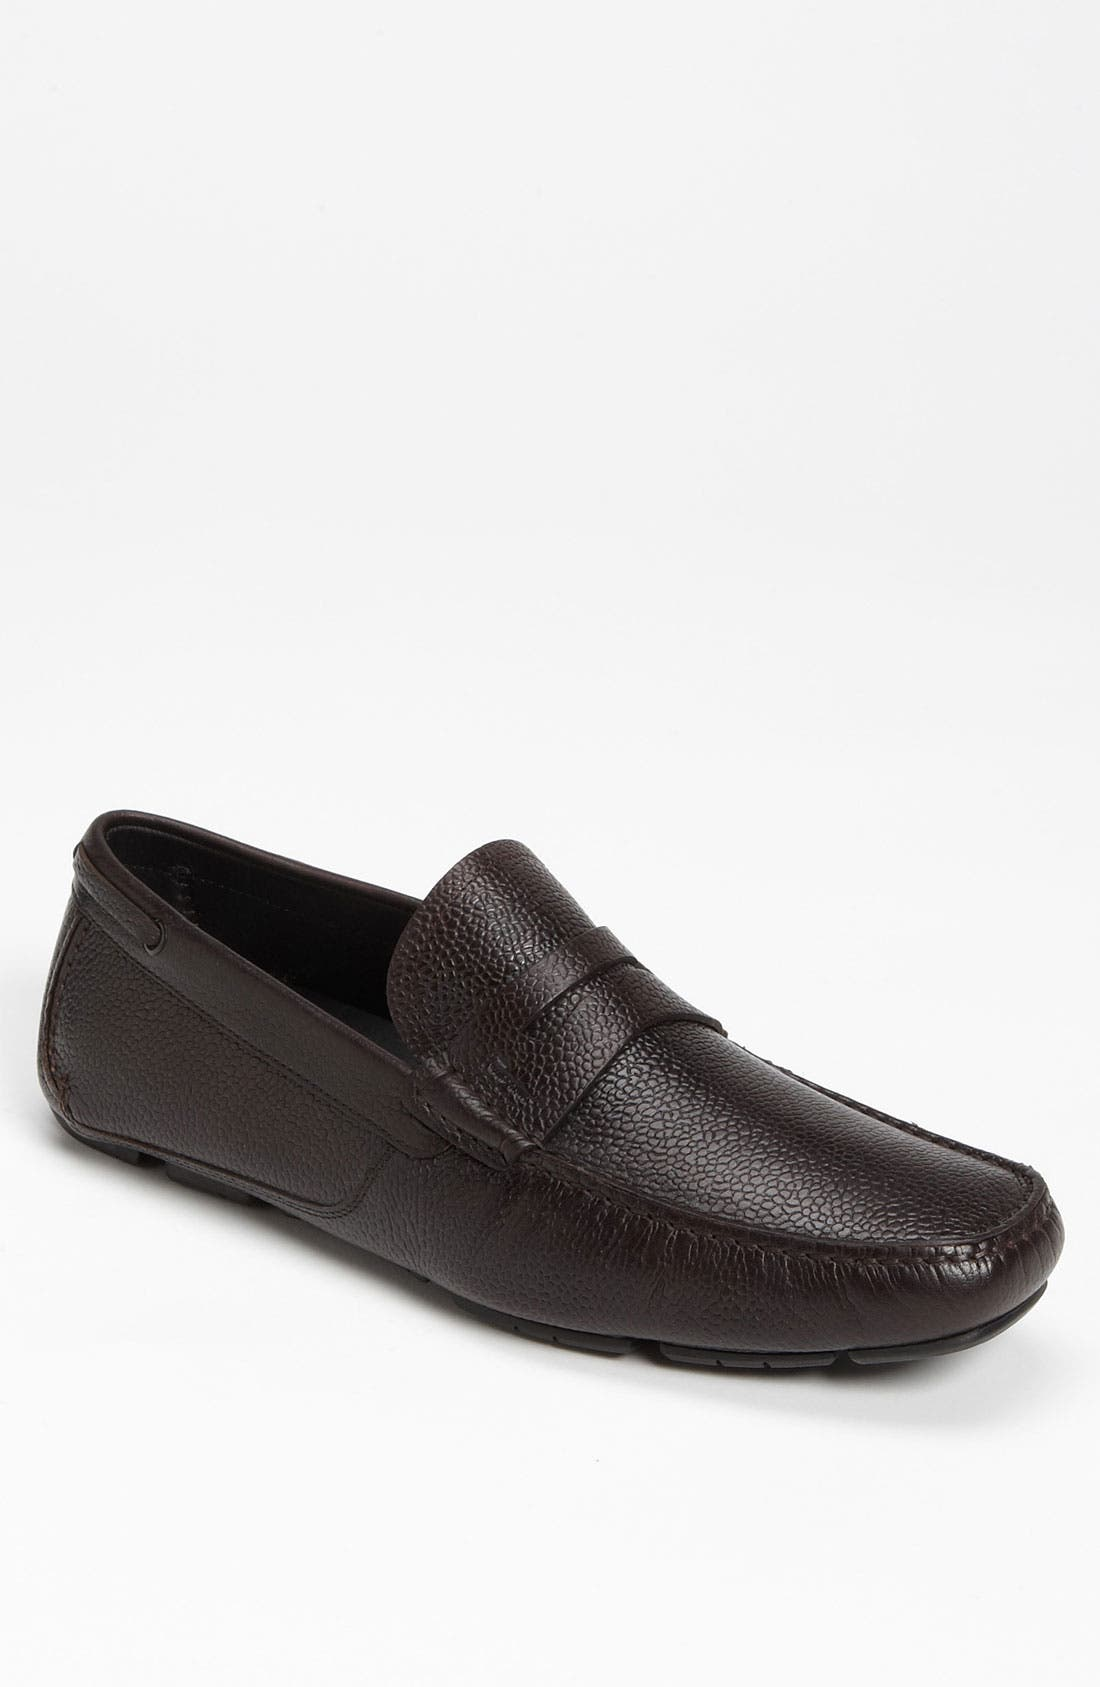 Alternate Image 1 Selected - Salvatore Ferragamo 'Billy 2' Driving Moccasin